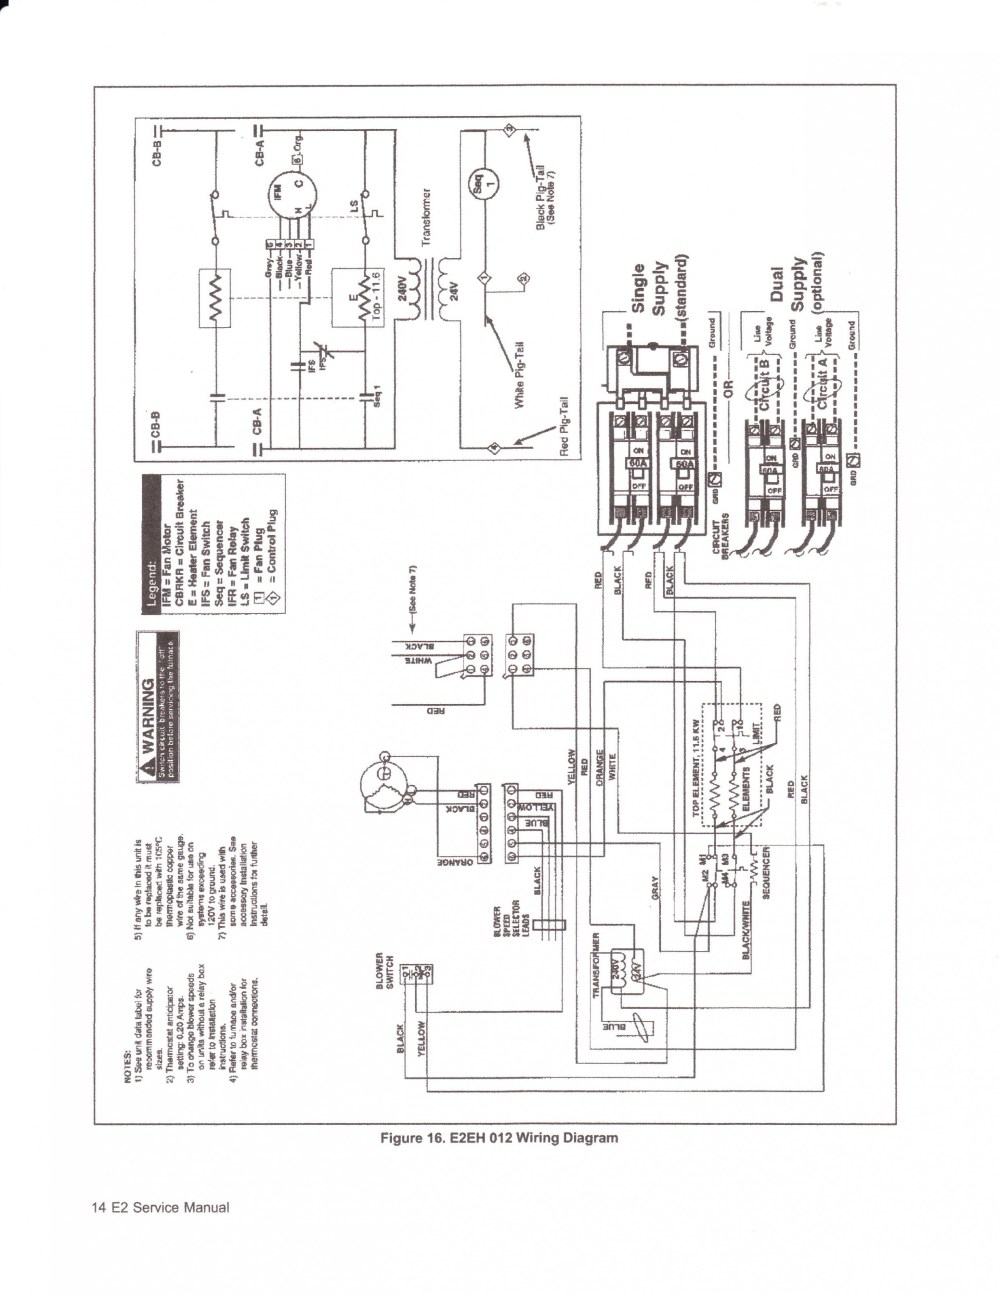 medium resolution of 3500a816 wiring diagram index listing of wiring diagrams evcon